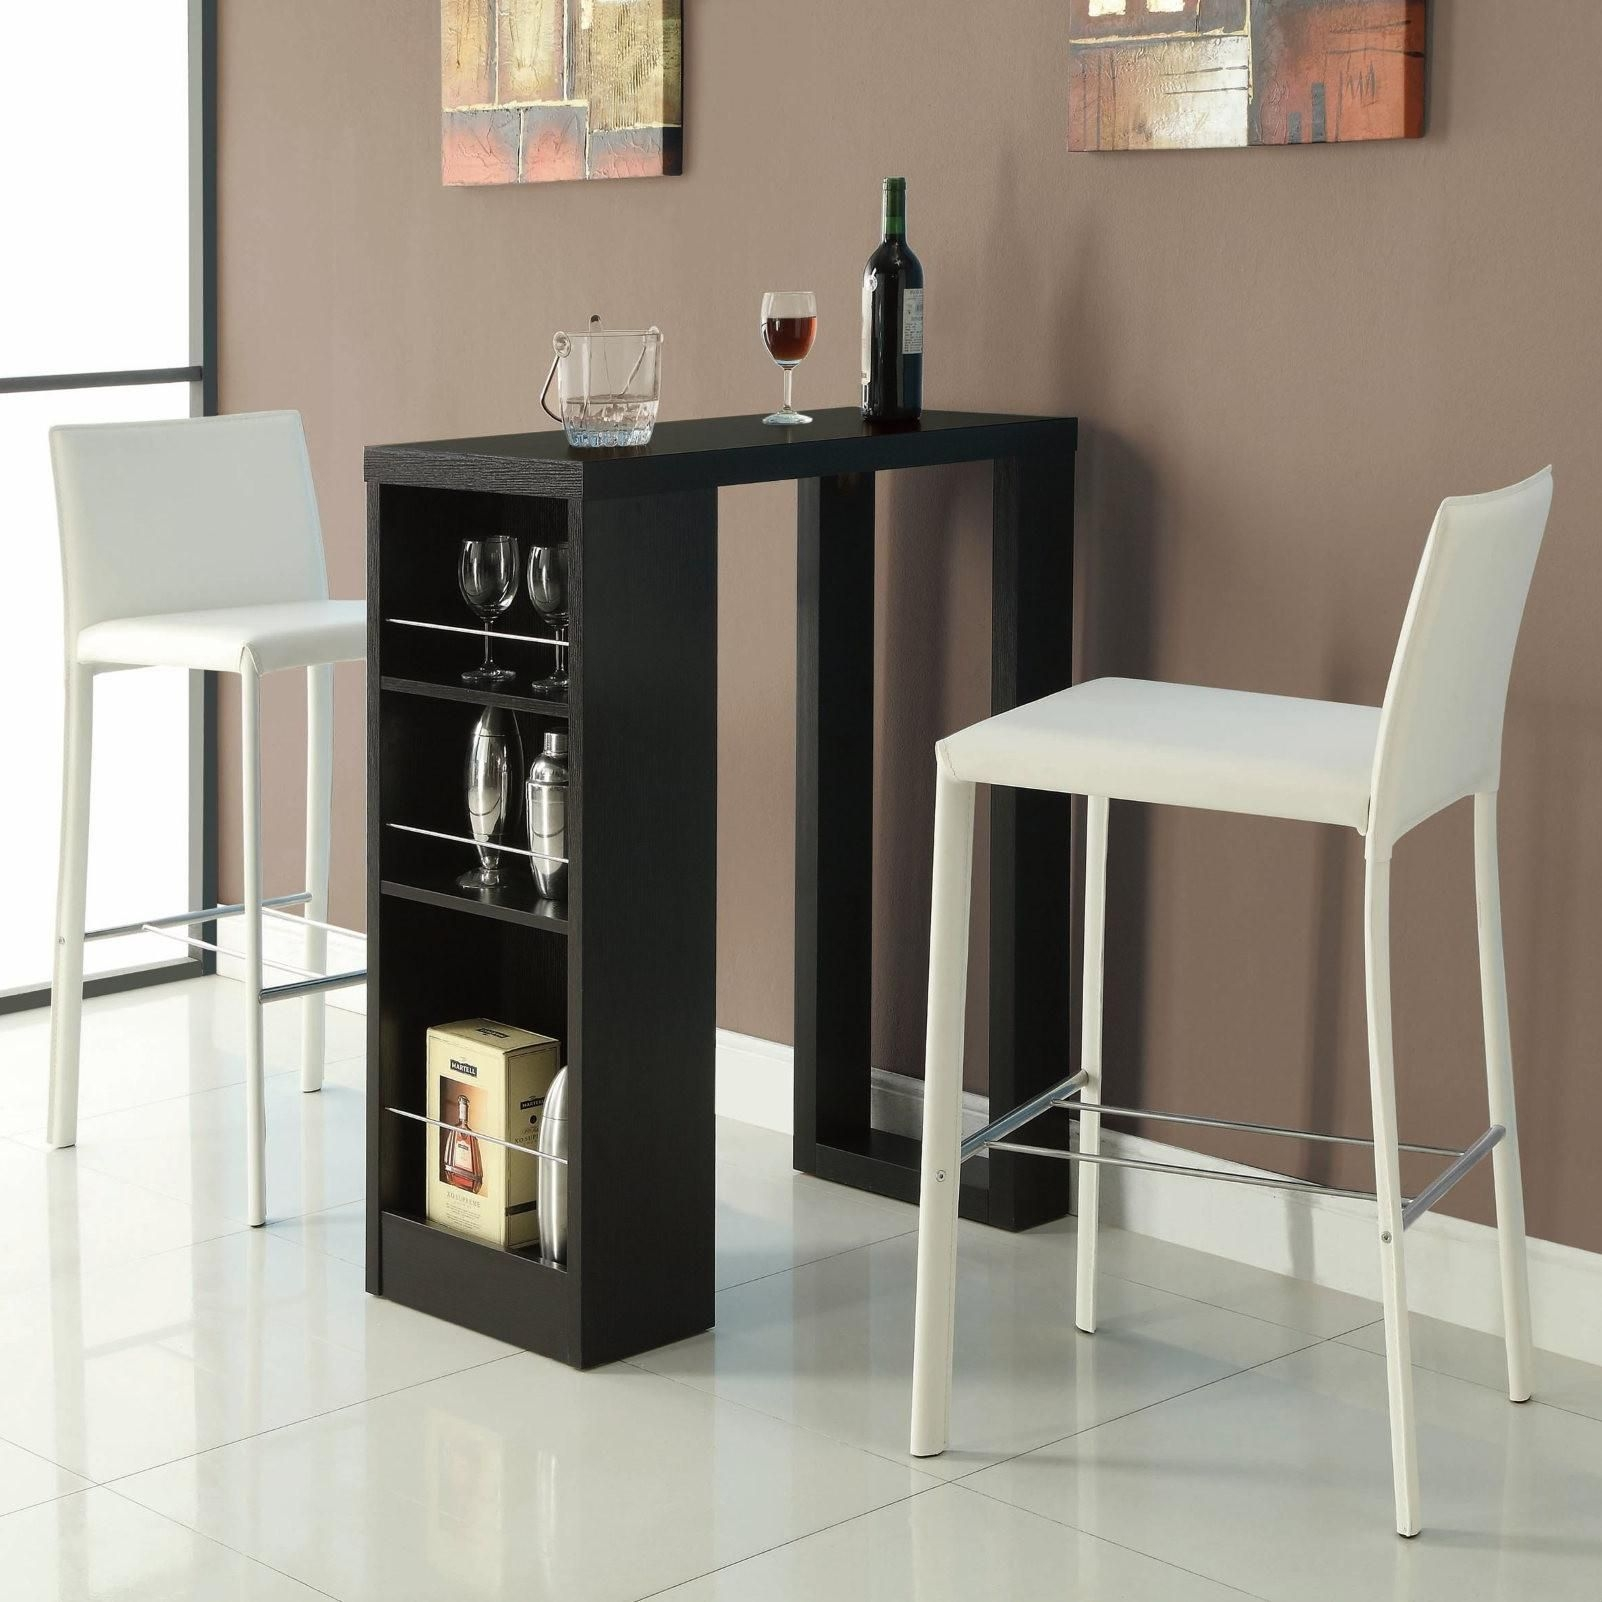 Pub Tables With Storage